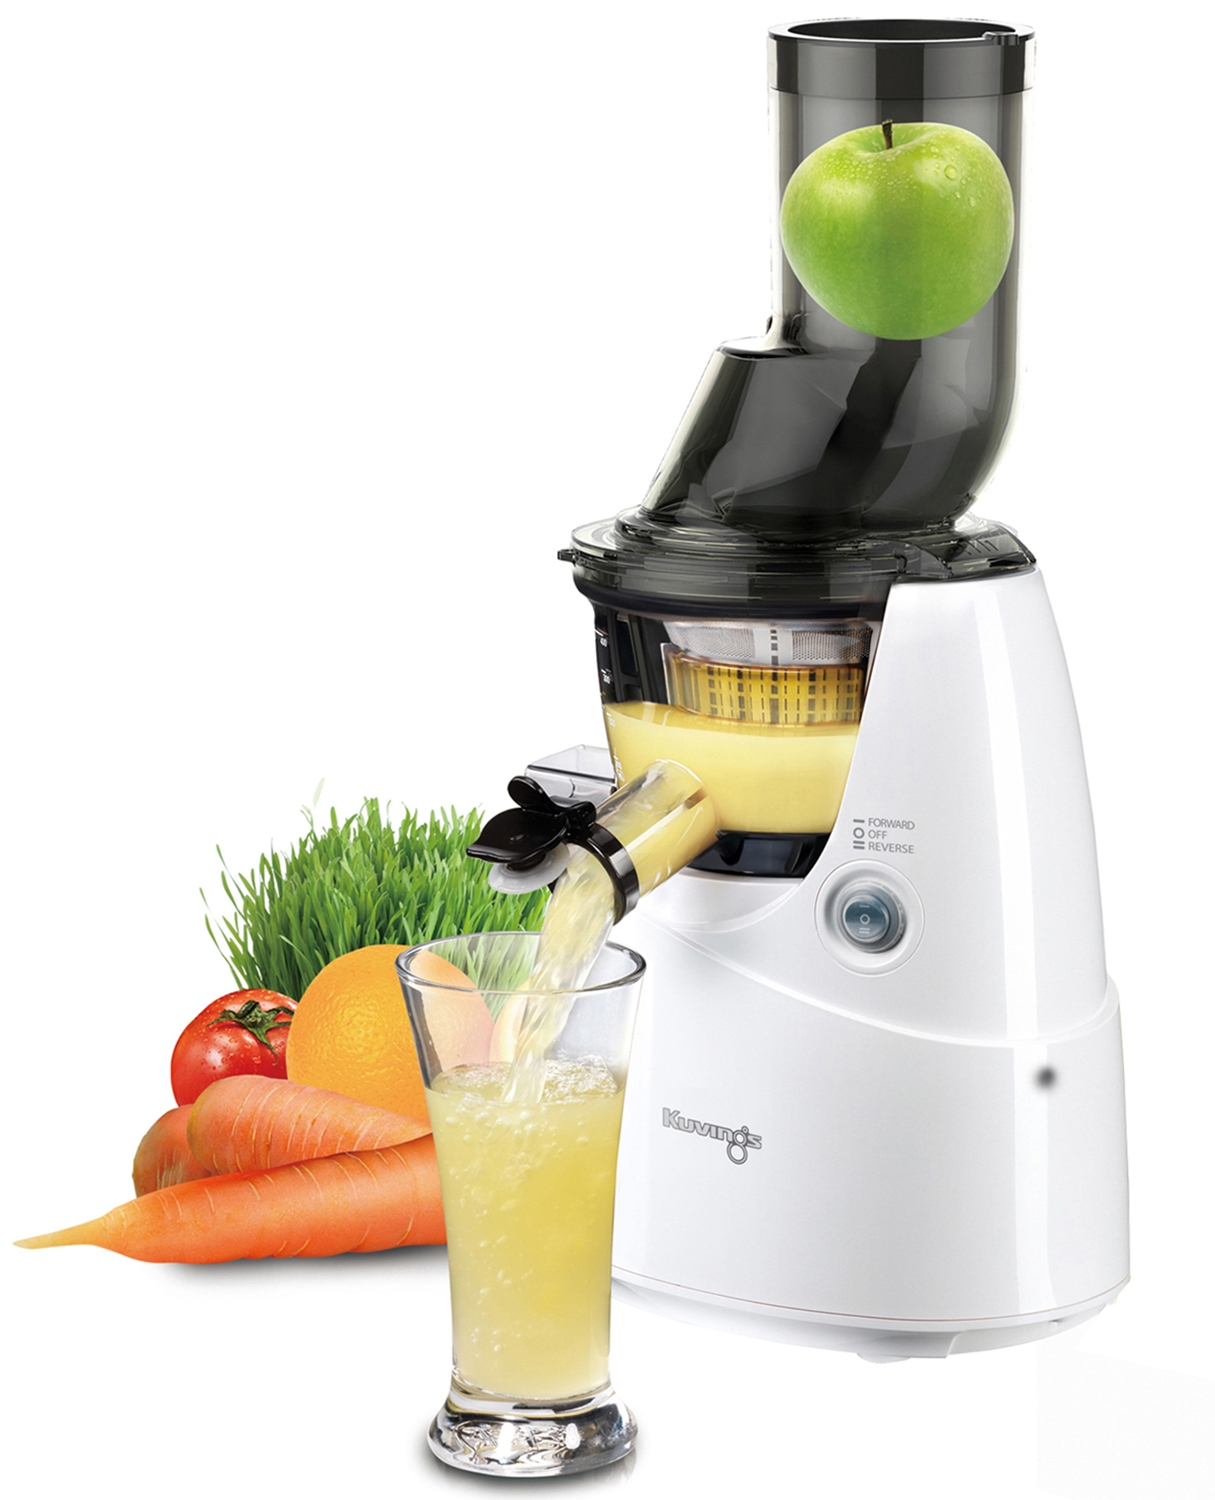 Kuvings Slow Juicer Assembly : Kuvings White Whole Slow Juicer - B6000W - Abt